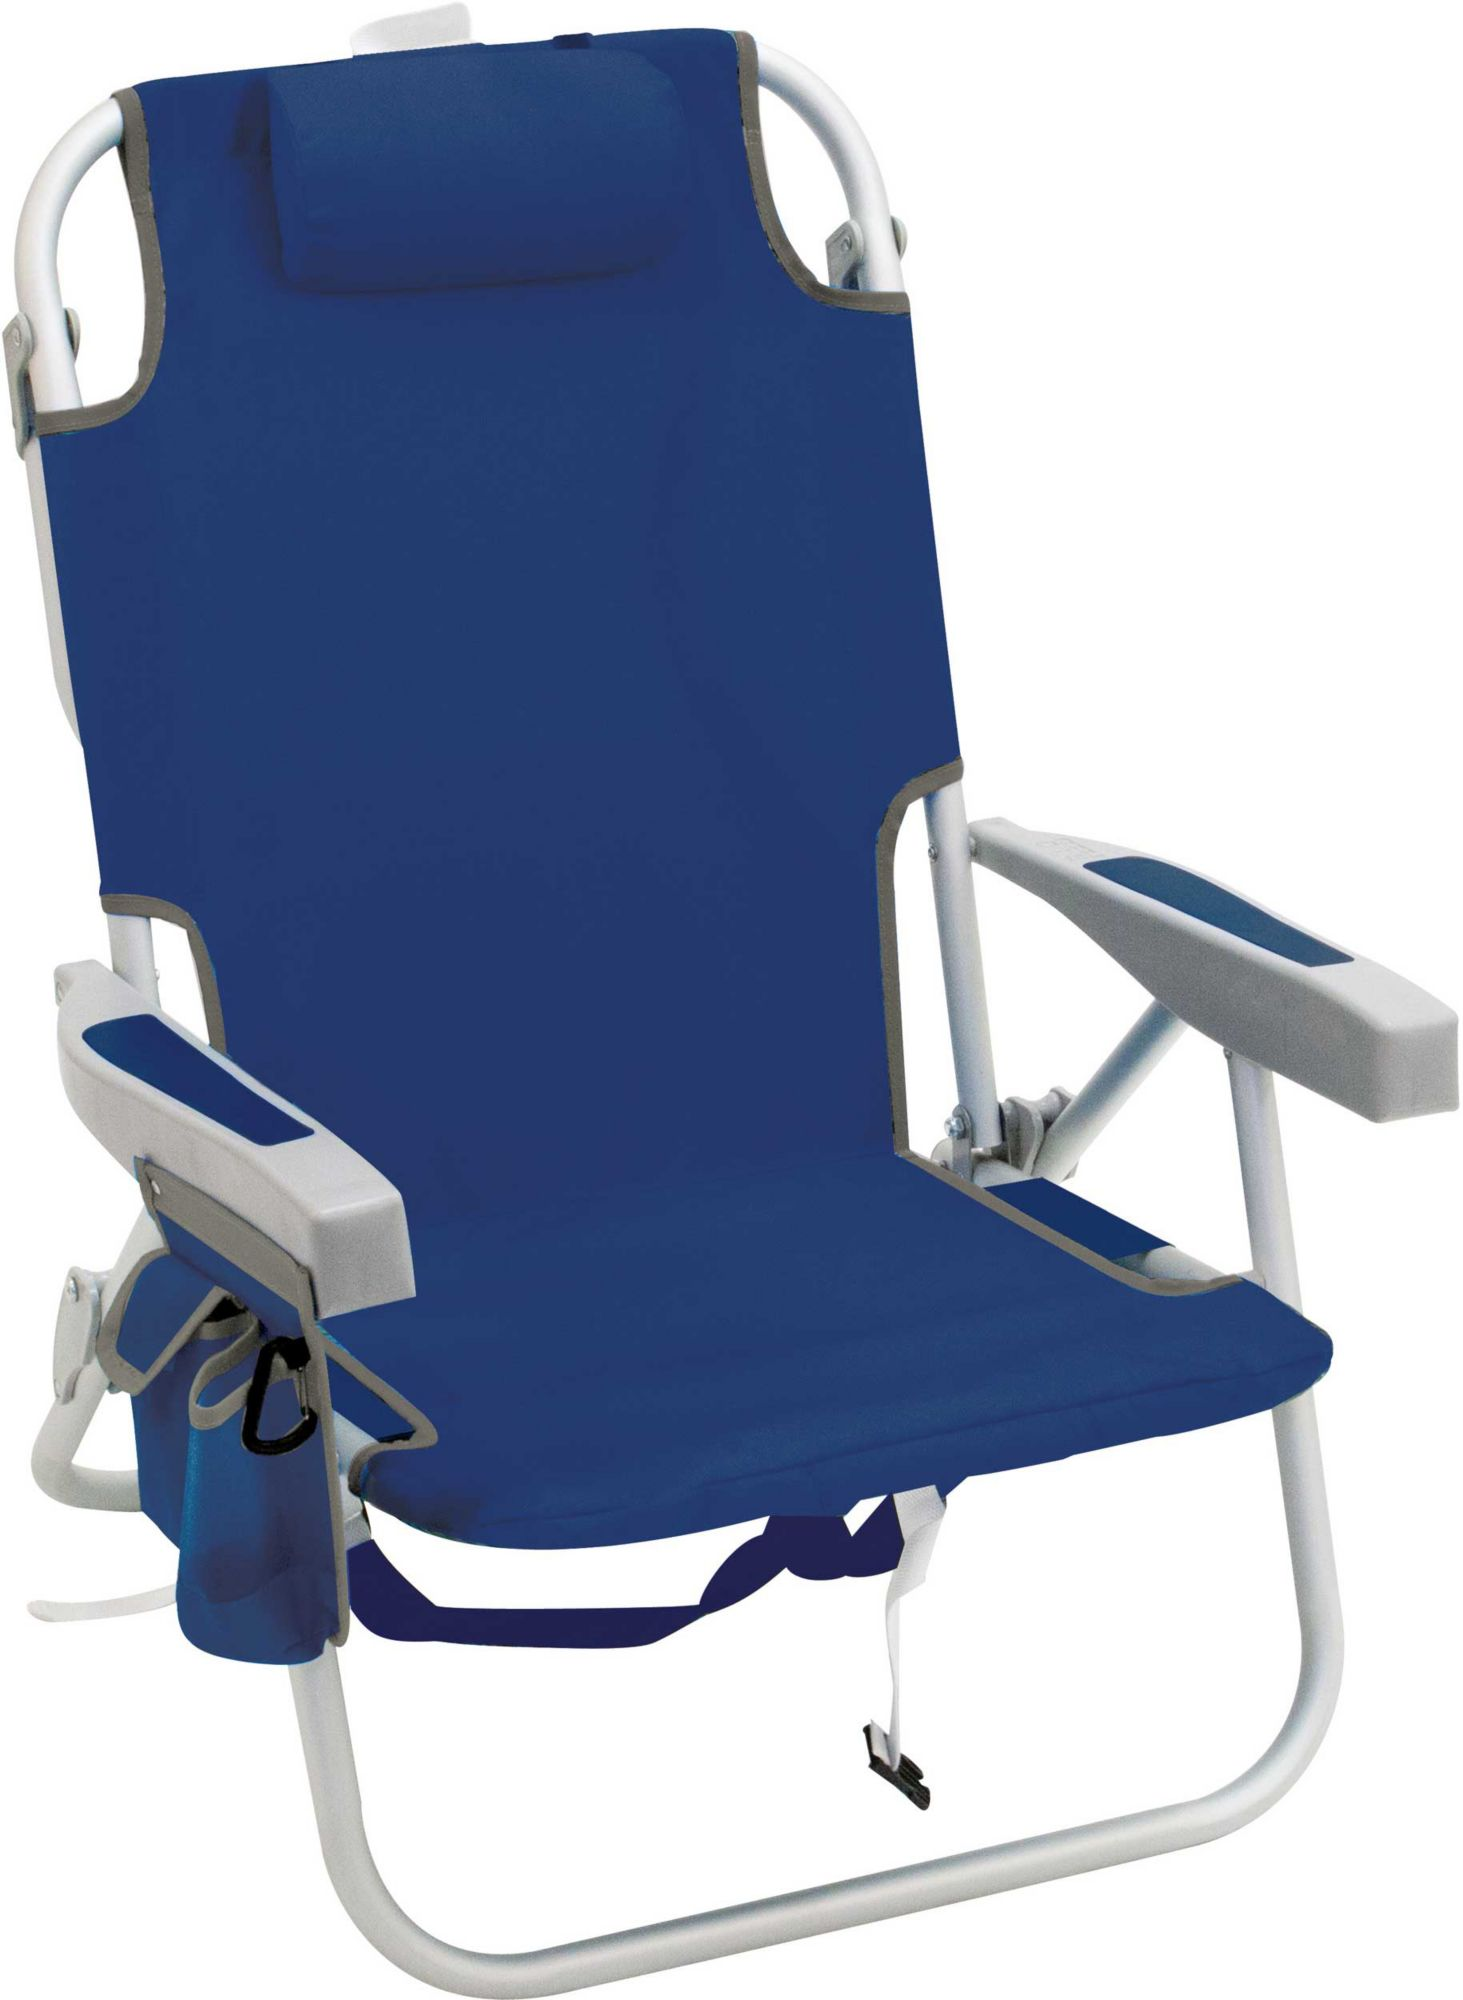 Rio Premium Backpack Beach Chair With Cooler Dick S Sporting Goods